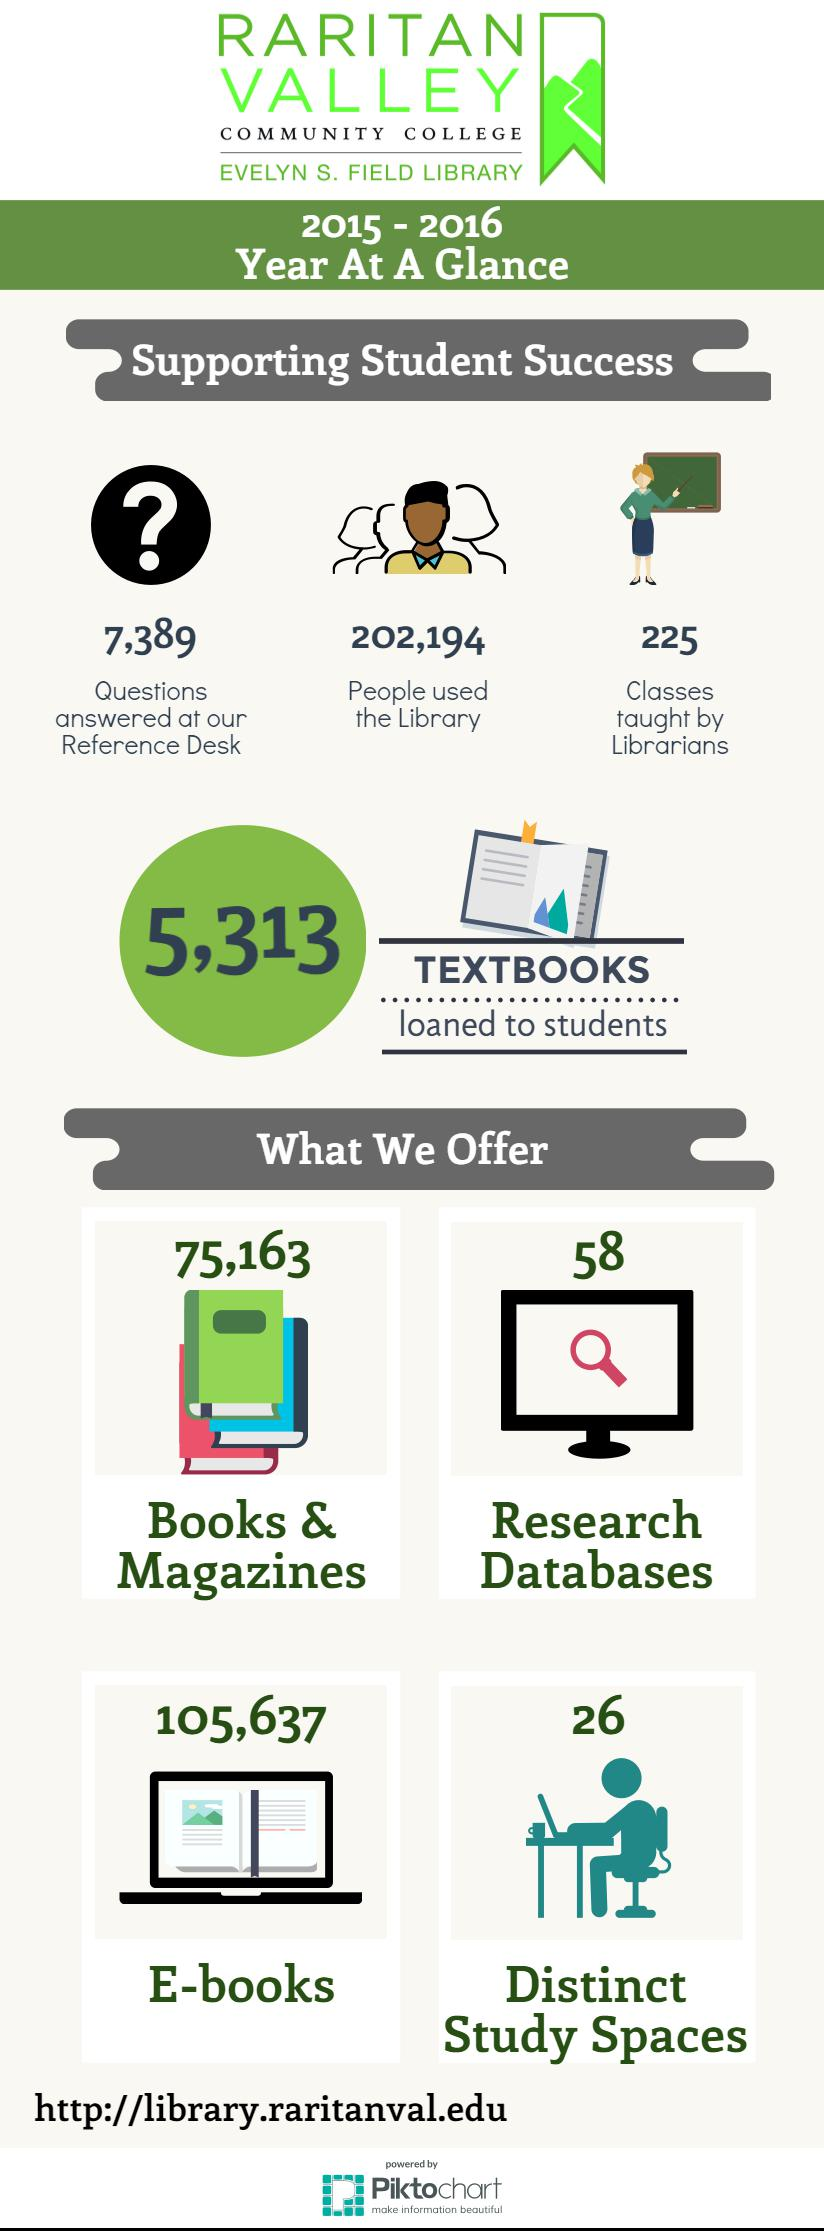 Evelyn s field library blog evelyn s field library at raritan year at a glance infographic fandeluxe